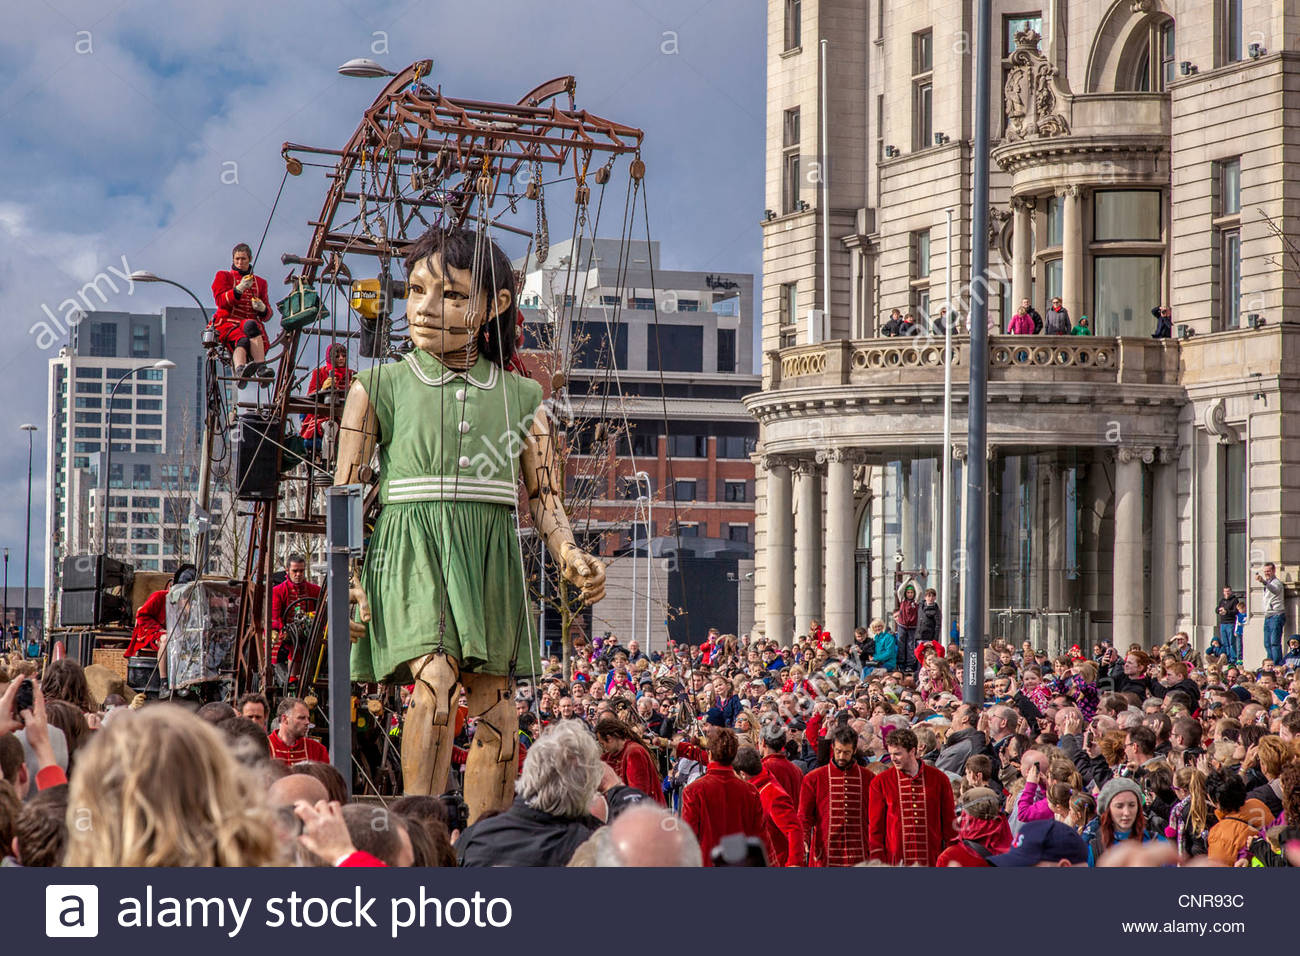 Street theatre company Royal De Luxe Giants marionette show called Sea Odyssey seen in front of the Liver building. - Stock Image